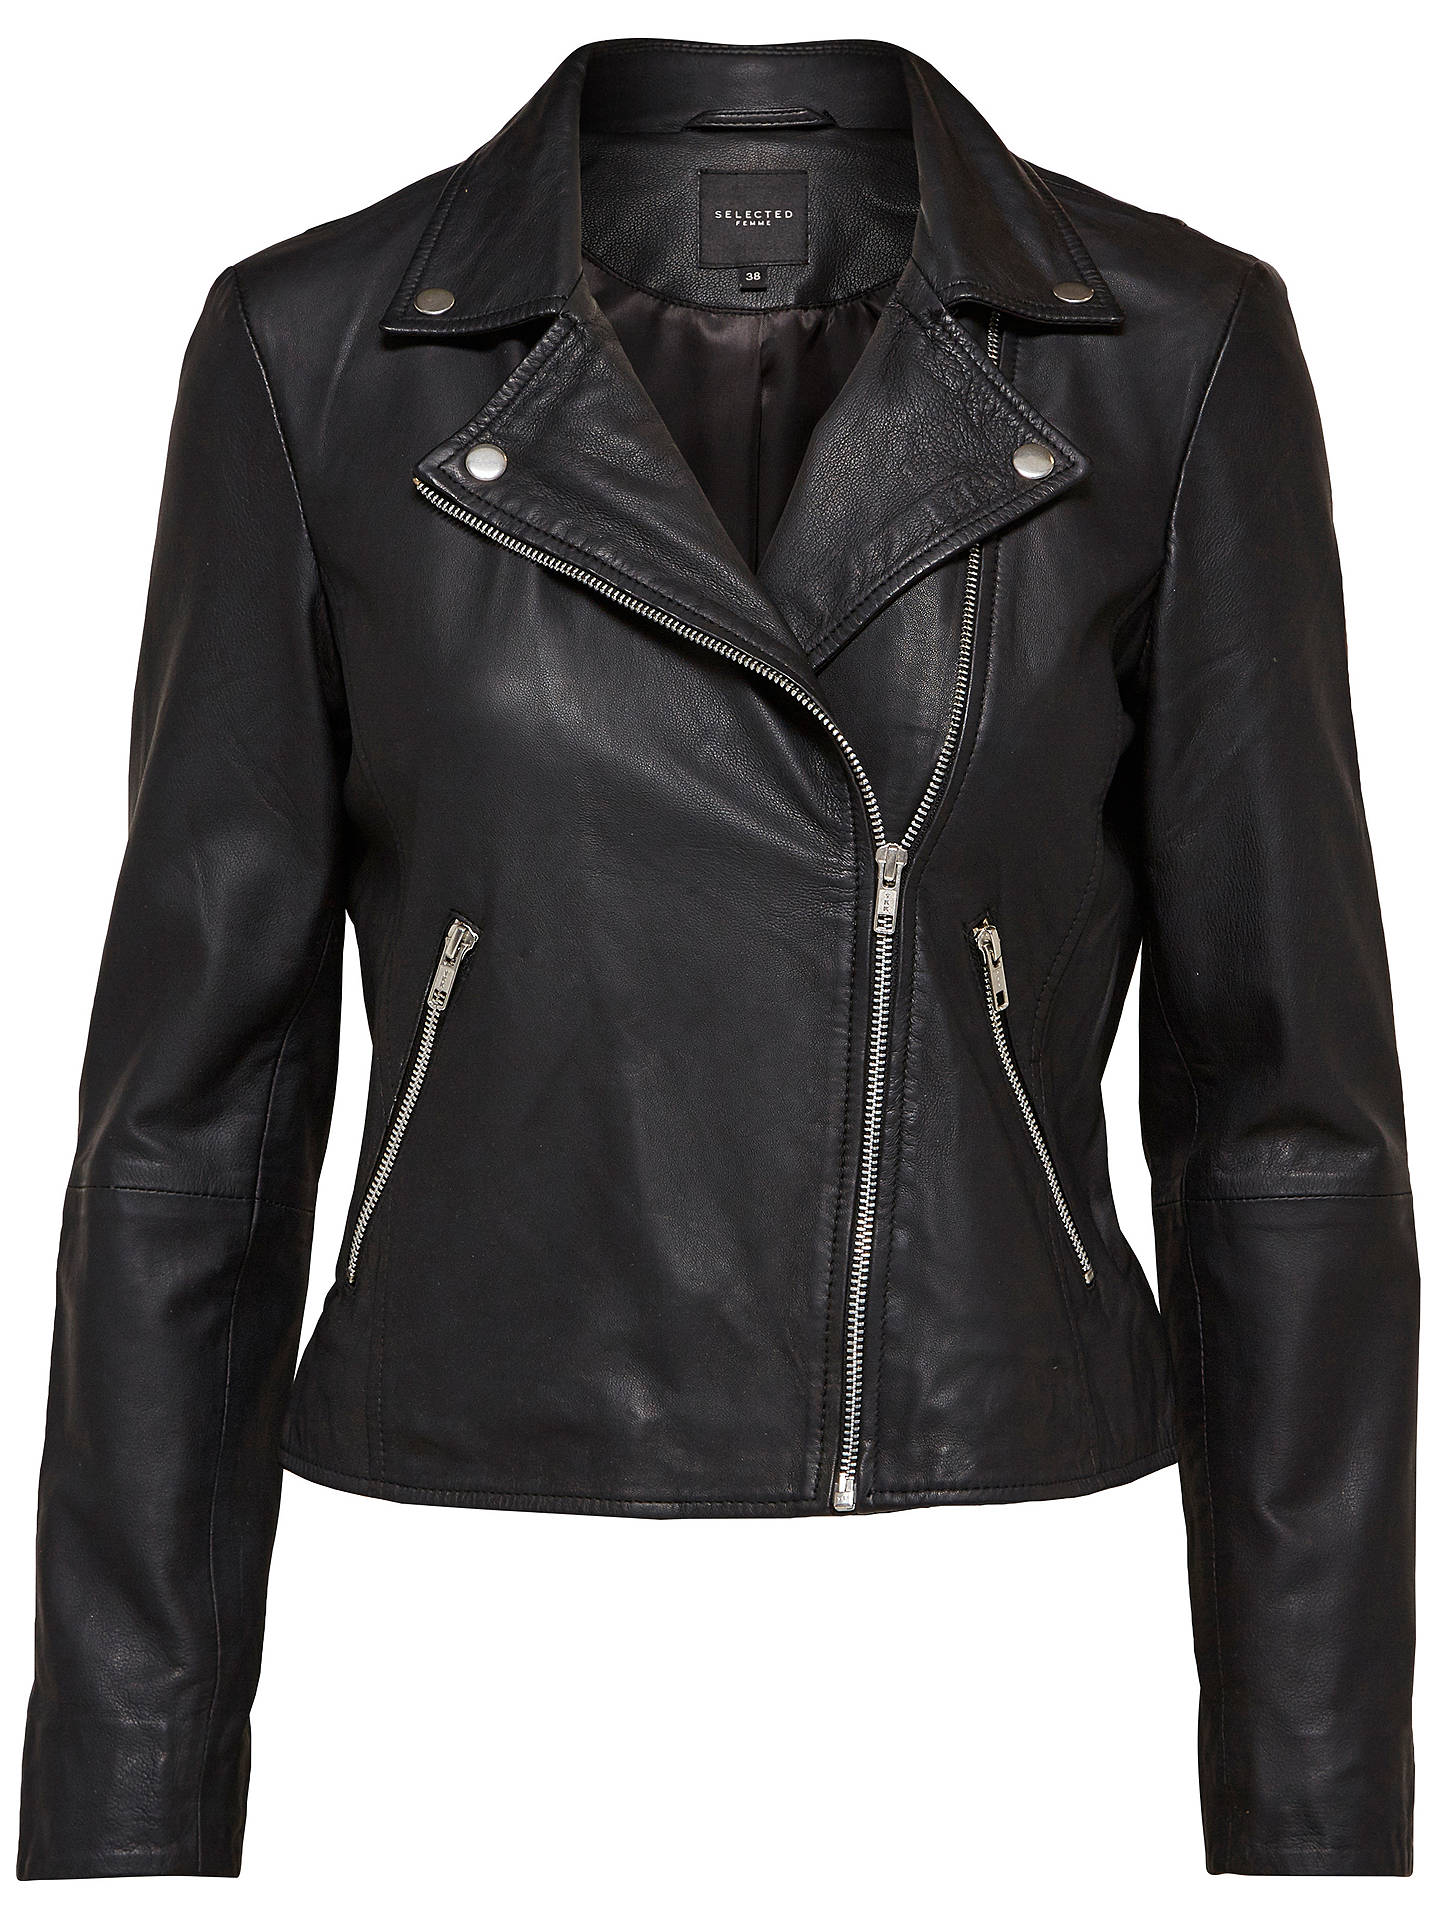 BuySelected Femme Marlen Leather Jacket, Black, 8 Online at johnlewis.com